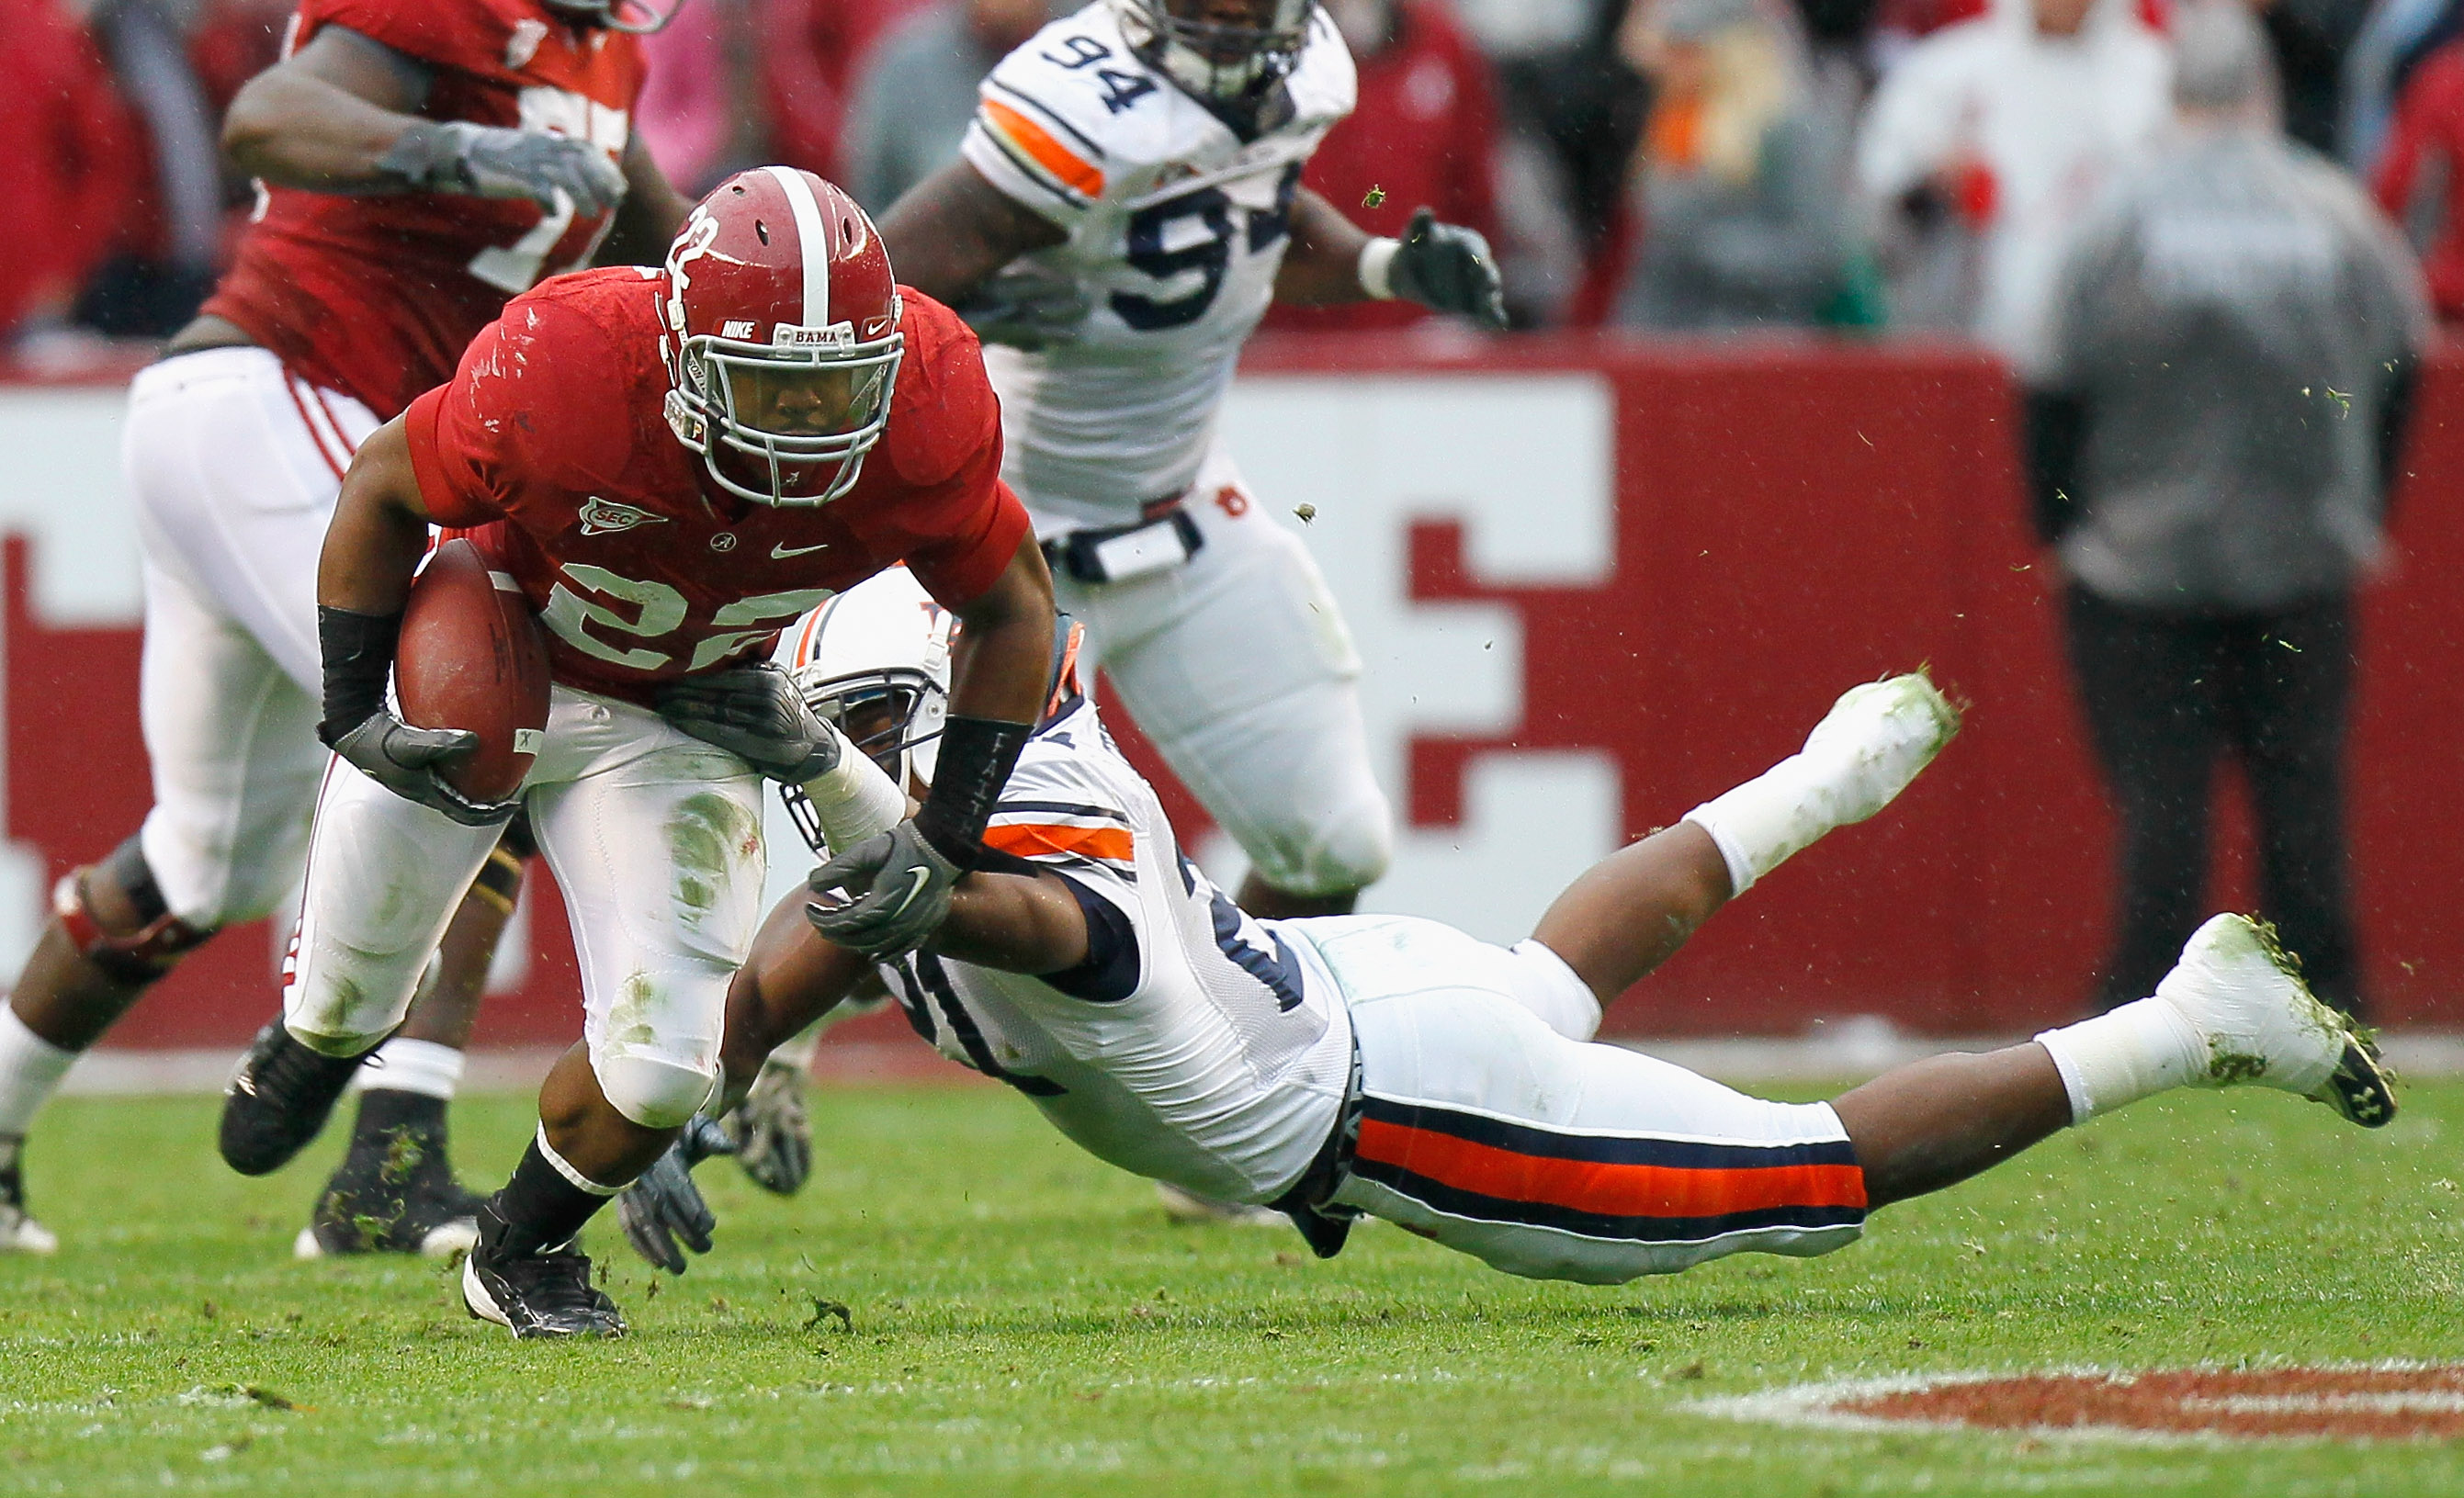 TUSCALOOSA, AL - NOVEMBER 26:  Mark Ingram #22 of the Alabama Crimson Tide breaks a tackle by Eltoro Freeman #21 of the Auburn Tigers at Bryant-Denny Stadium on November 26, 2010 in Tuscaloosa, Alabama.  (Photo by Kevin C. Cox/Getty Images)